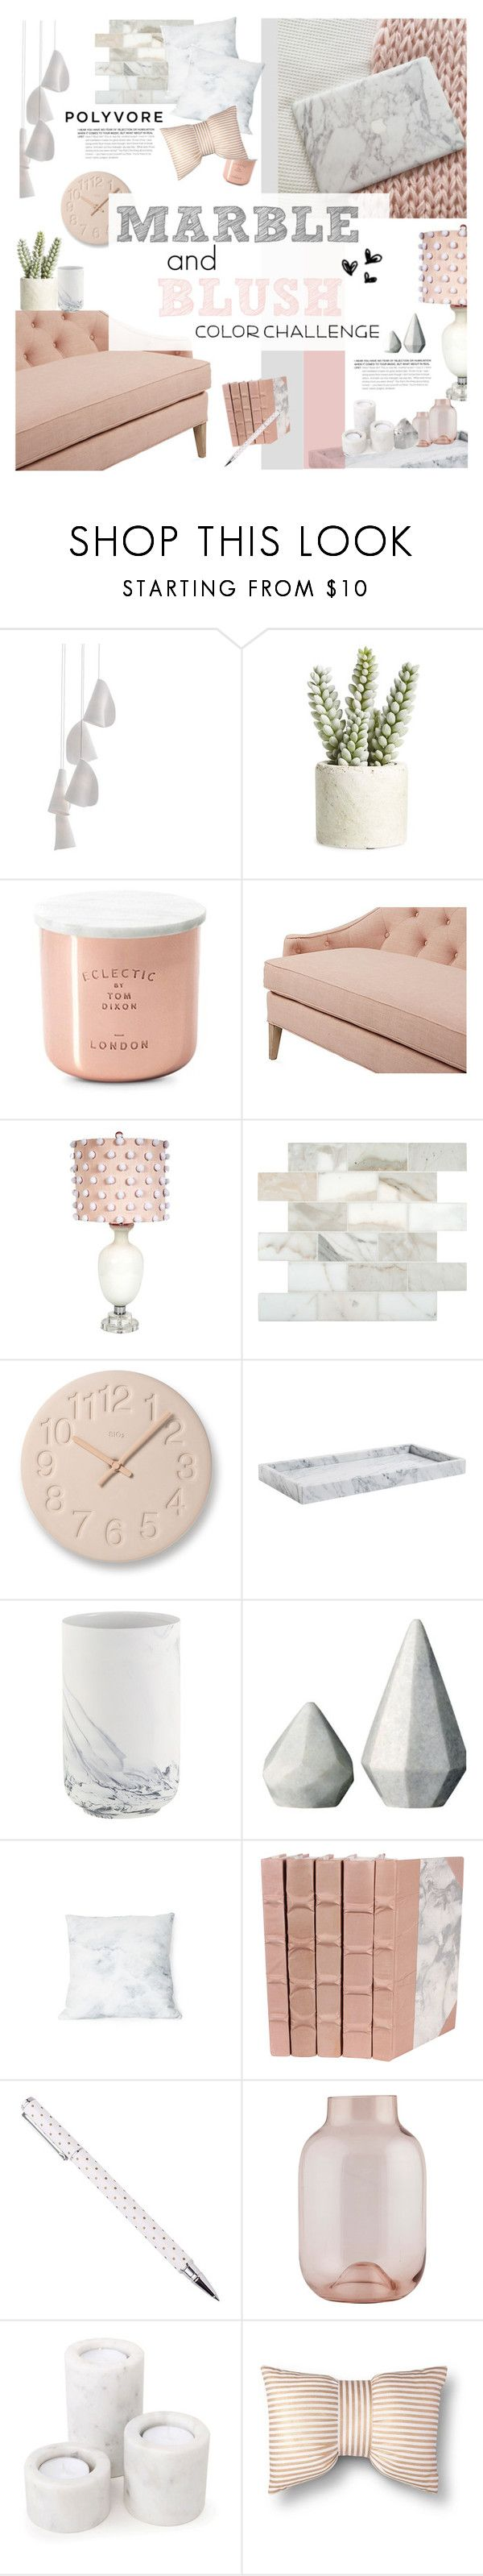 """""""Perfect Pair; Marble & Blush"""" by happilyjynxed ❤ liked on Polyvore featuring interior, interiors, interior design, home, home decor, interior decorating, Bocci, Allstate Floral, Tom Dixon and Dana Gibson"""